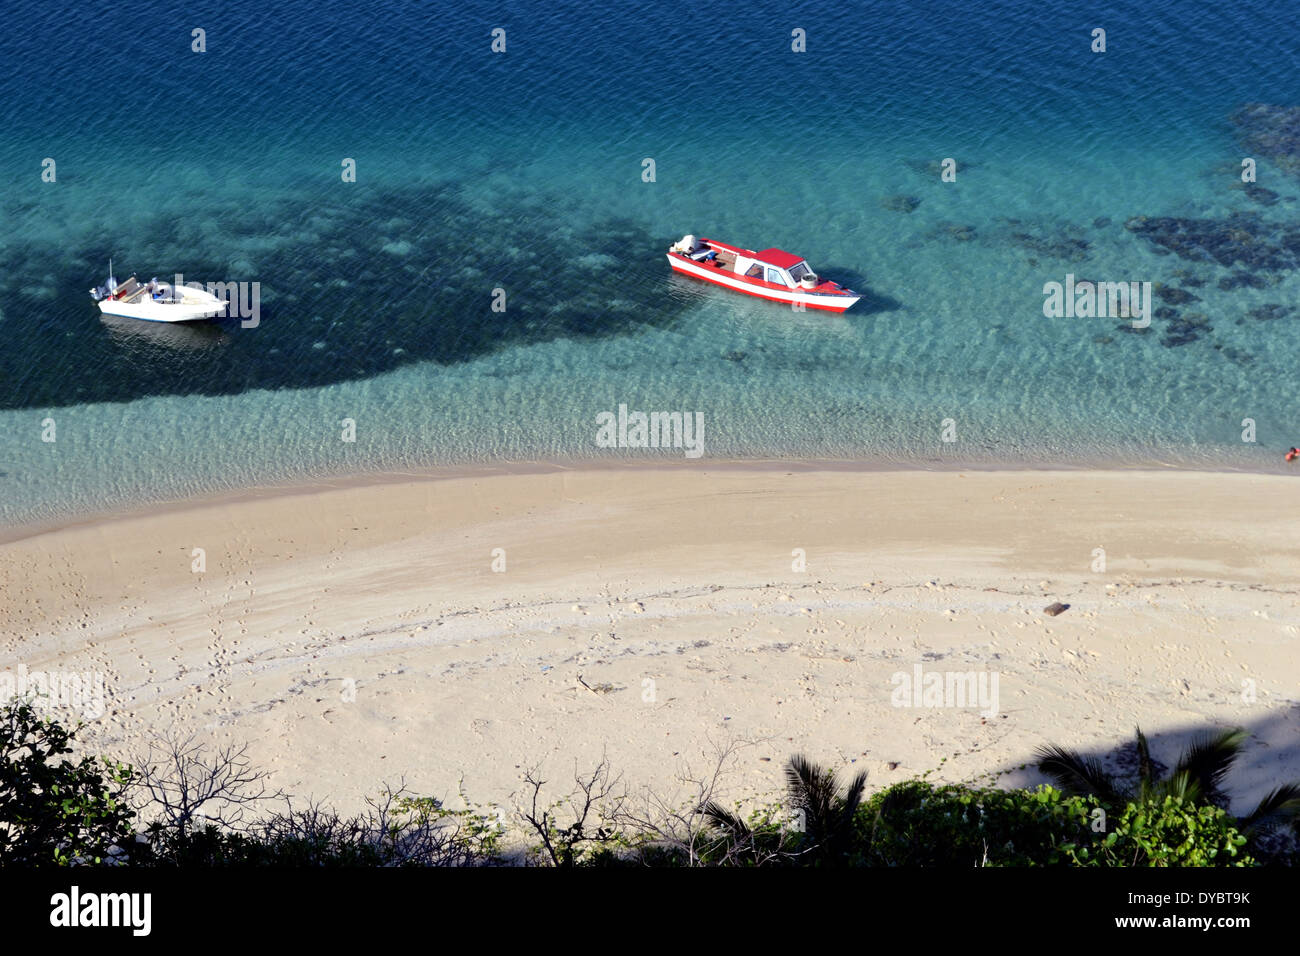 Boats docked in a beach in Nukutapu islet, Wallis Island, Wallis and Futuna, Melanesia, South Pacific - Stock Image